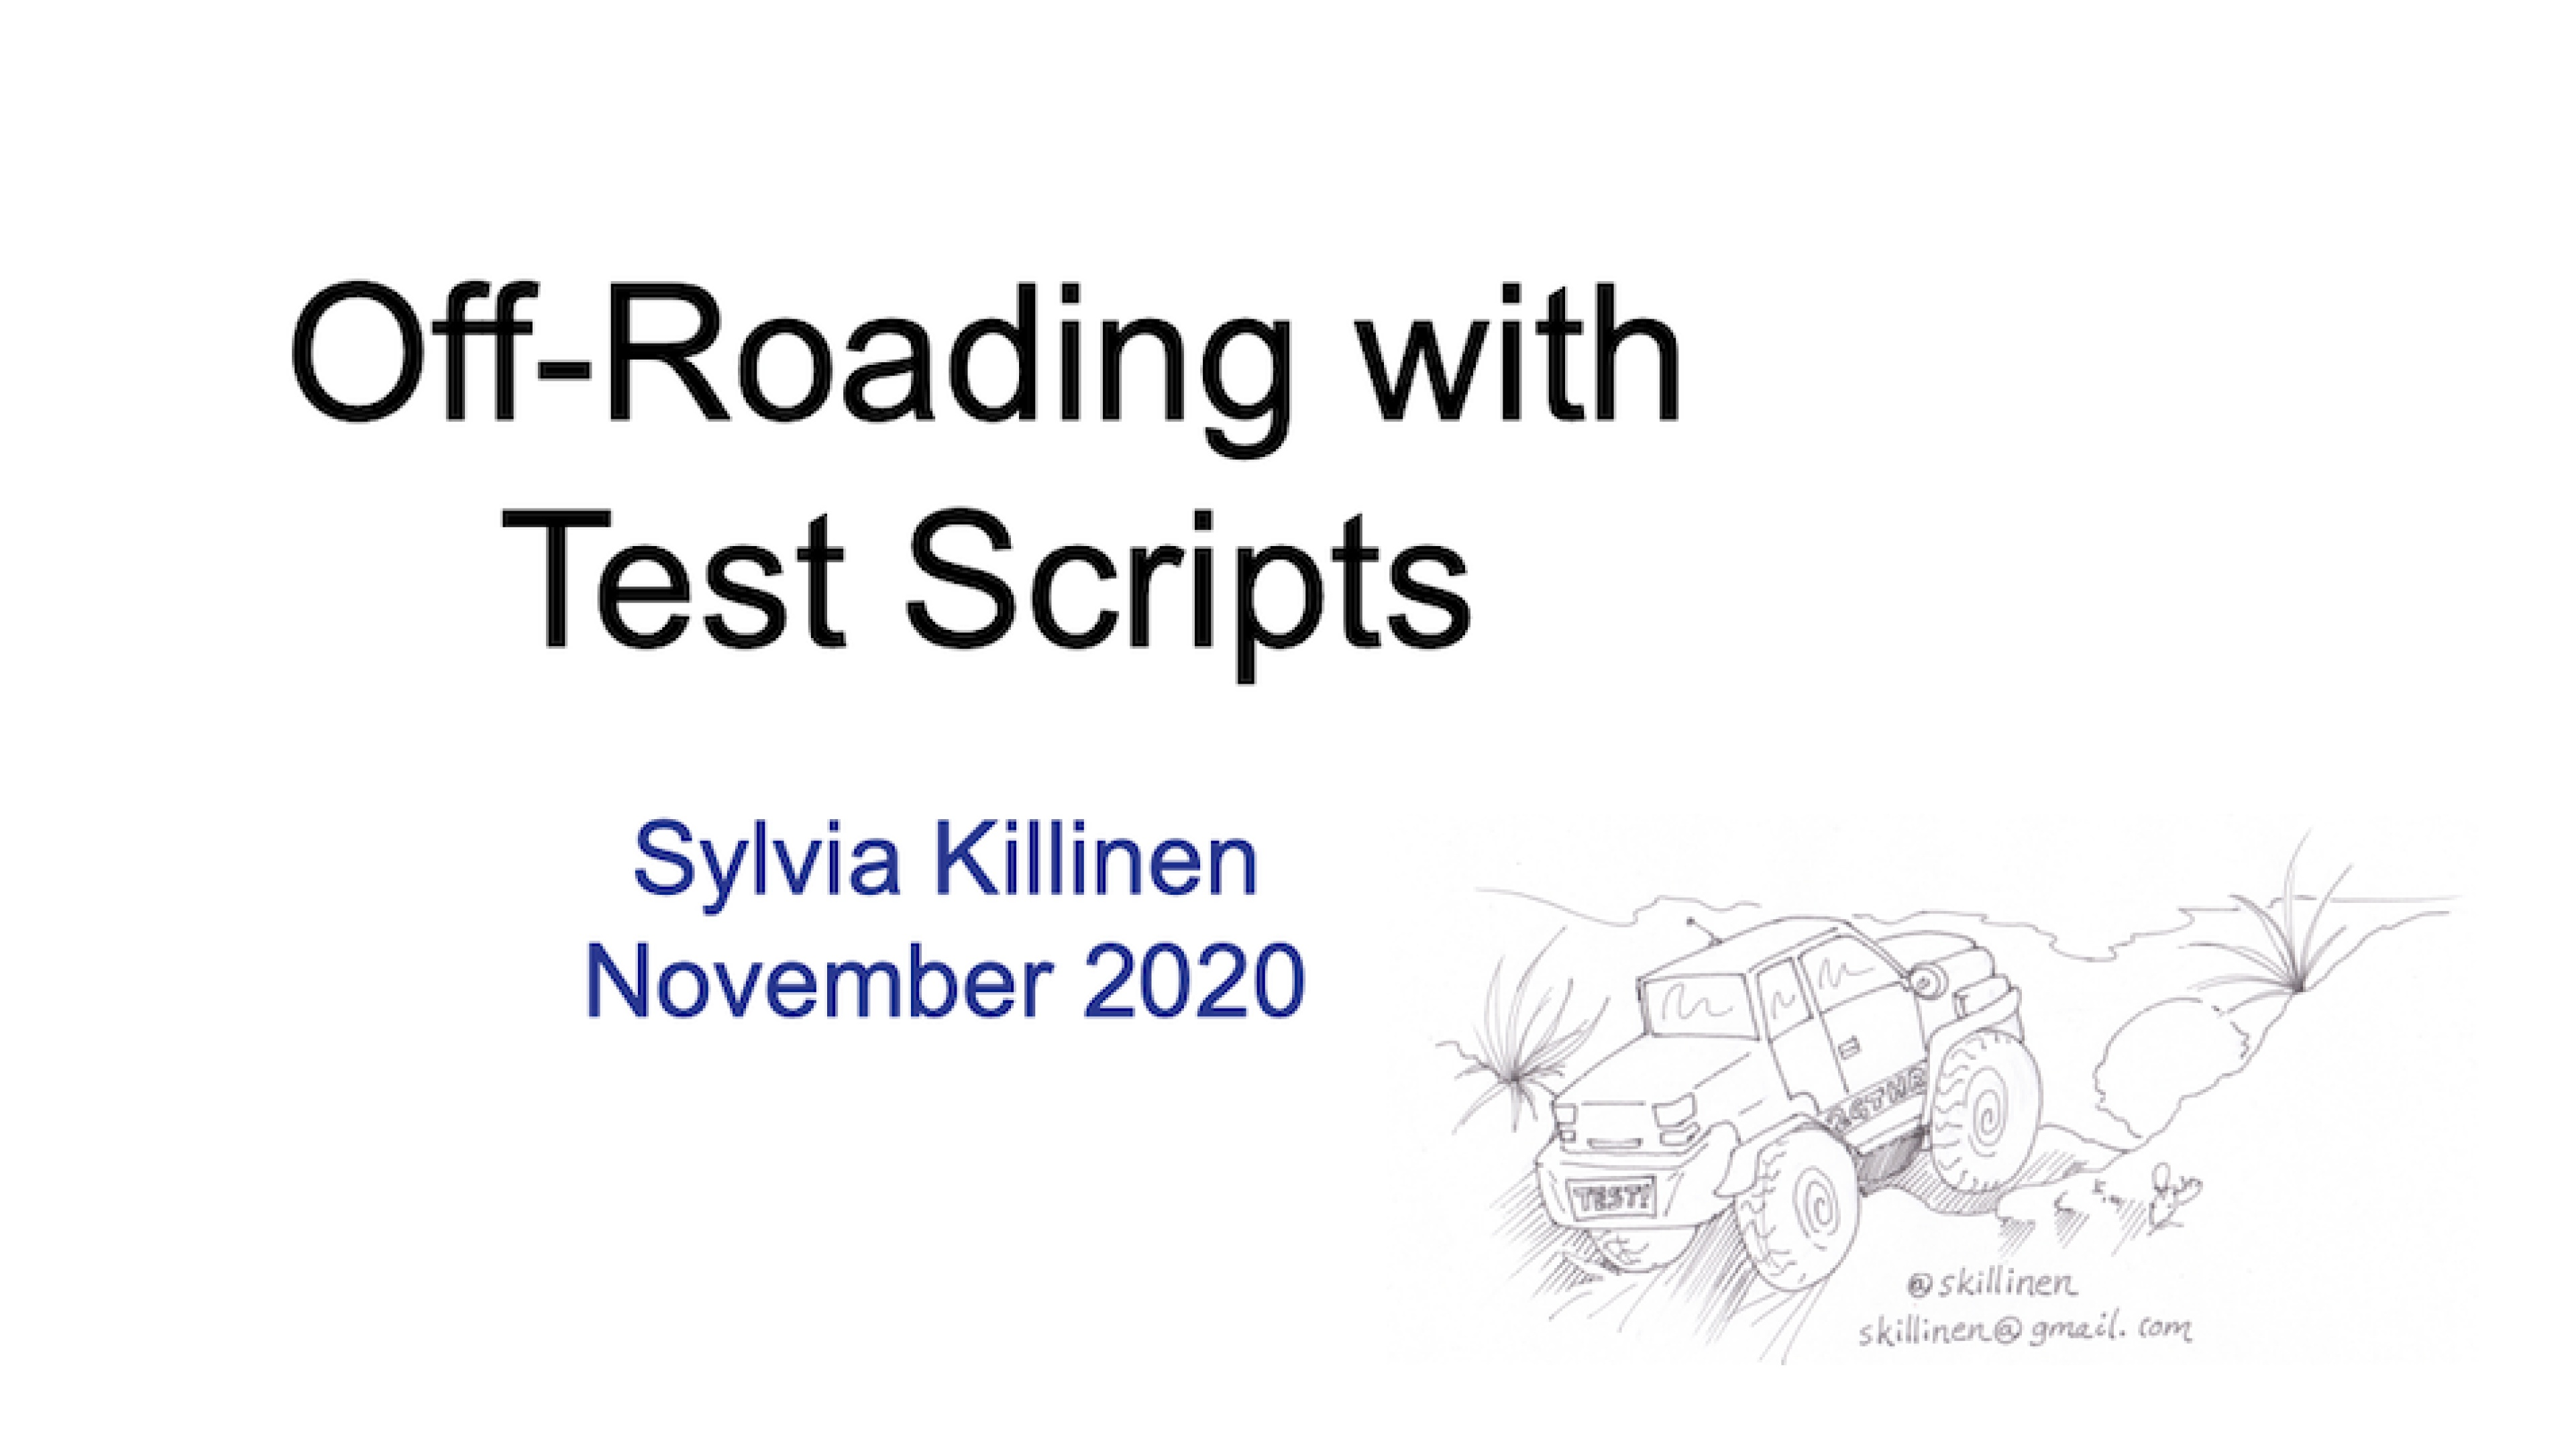 Off-Roading with Test Scripts with SylviaKillinen